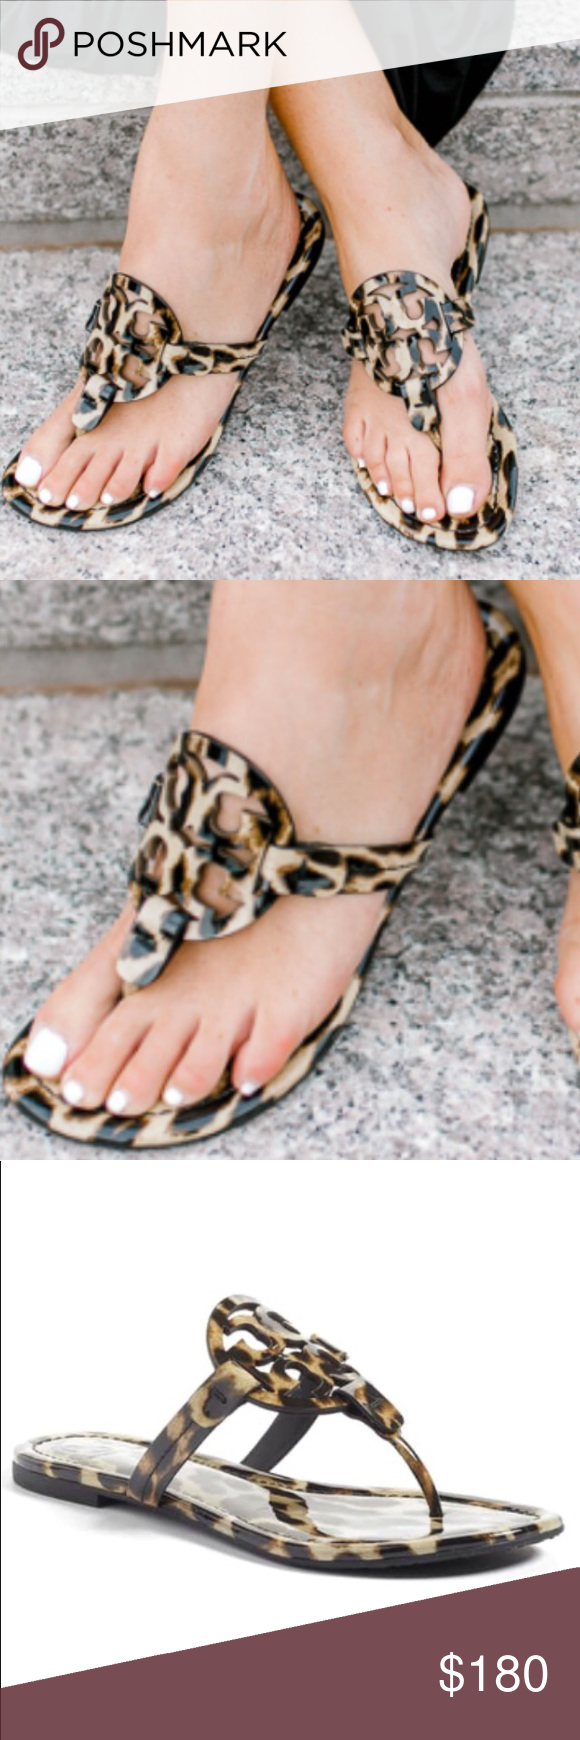 0e71645f5 New Patent Leather Miller Sandals Gorgeous Tory Burch Miller Sandals in  Natural Leopard Print. Super cute and right on trend with animal print being  so hot ...